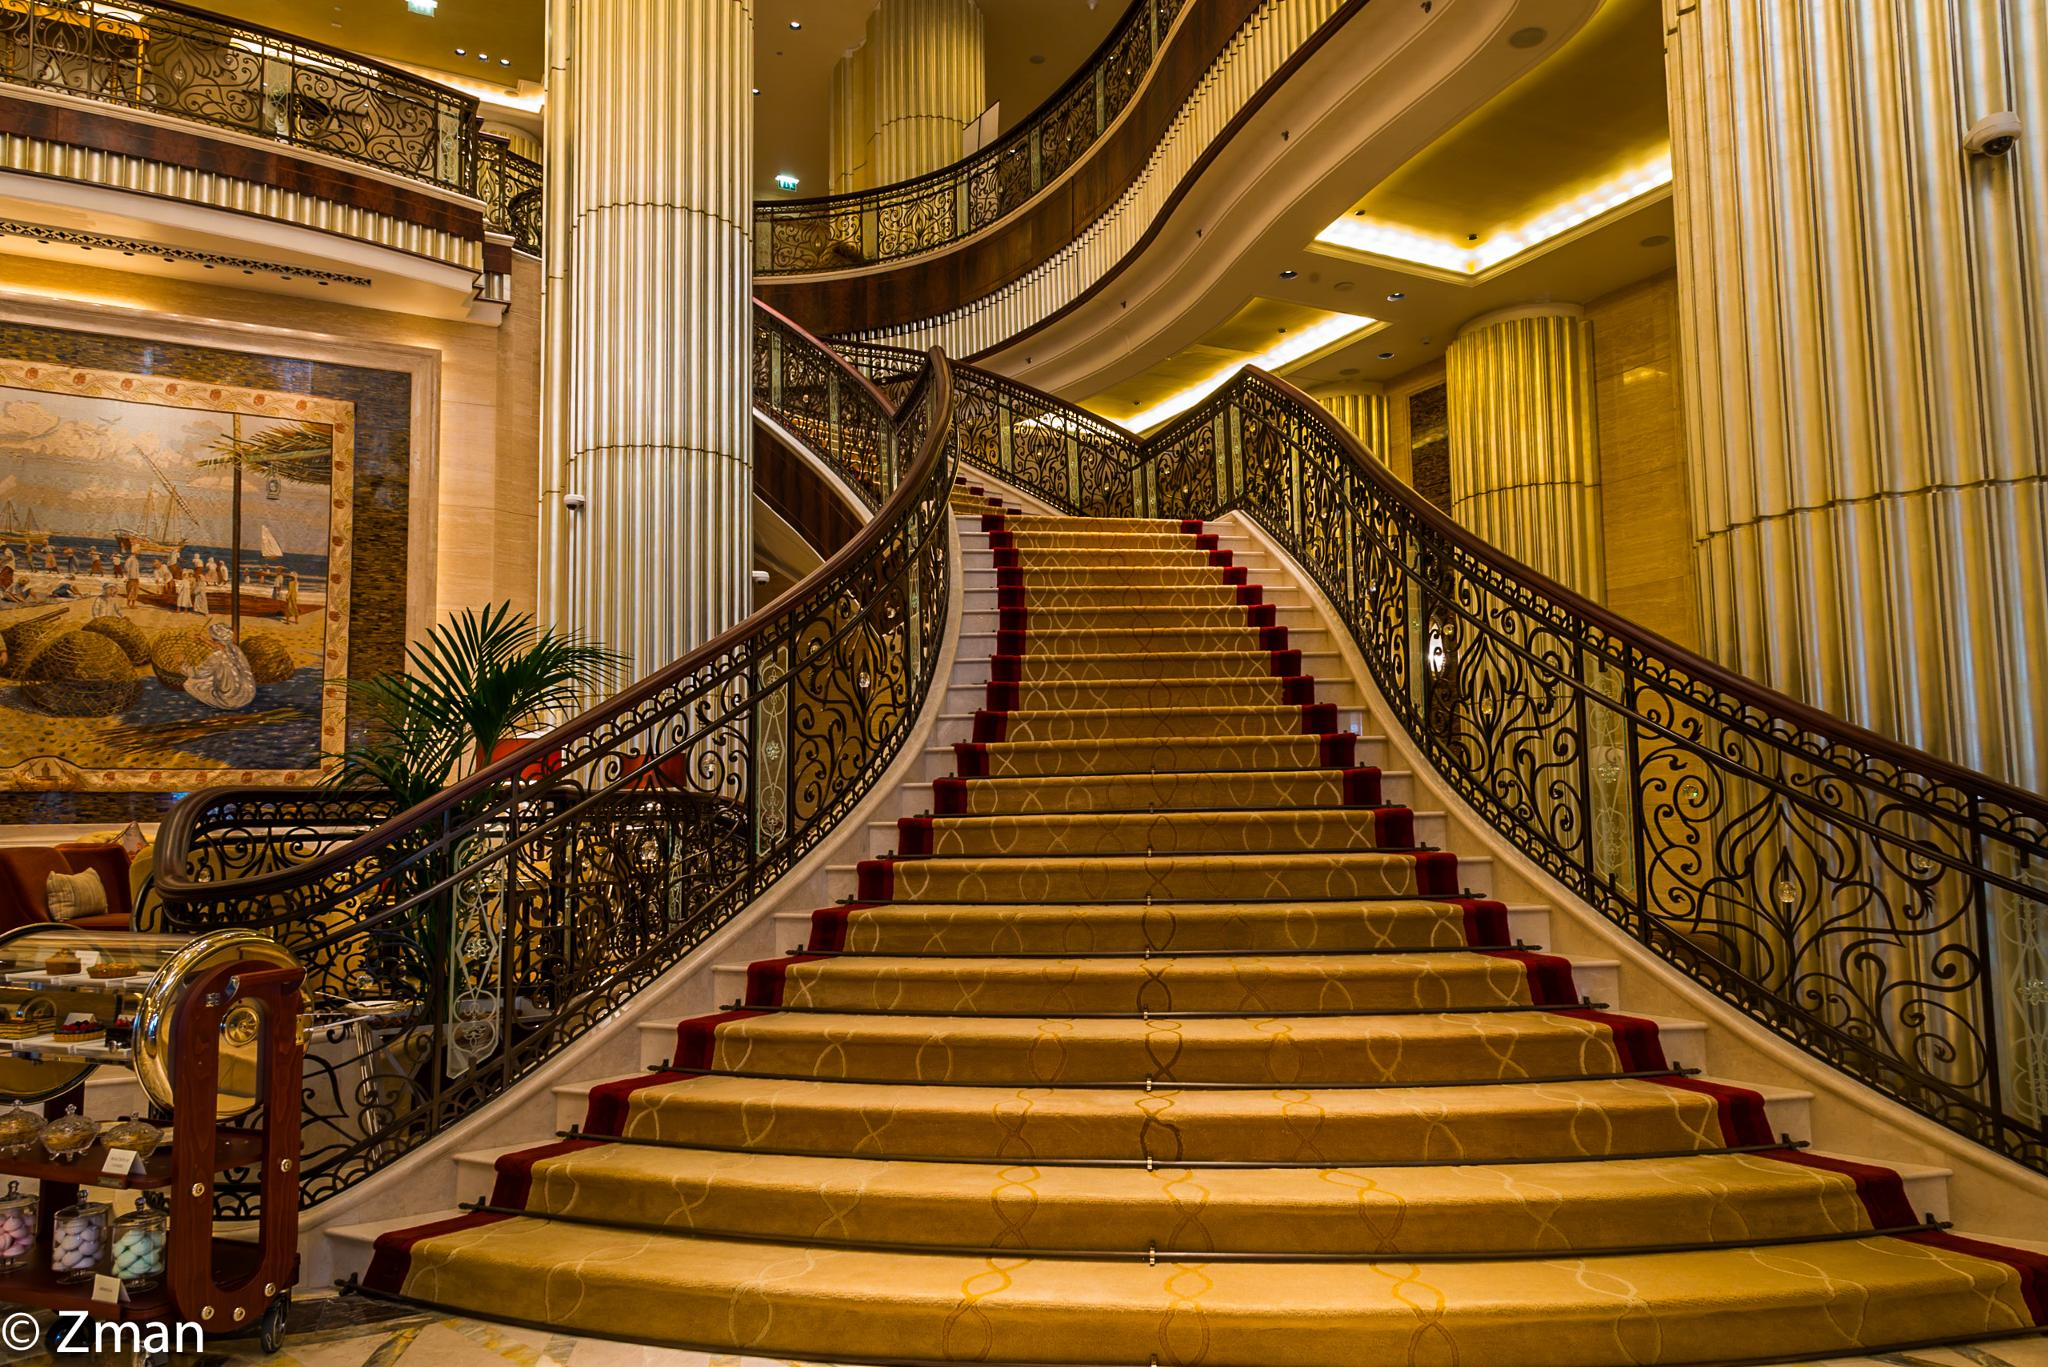 The Stairs AT St. Regis Abu Dhabi by muhammad.nasser.963